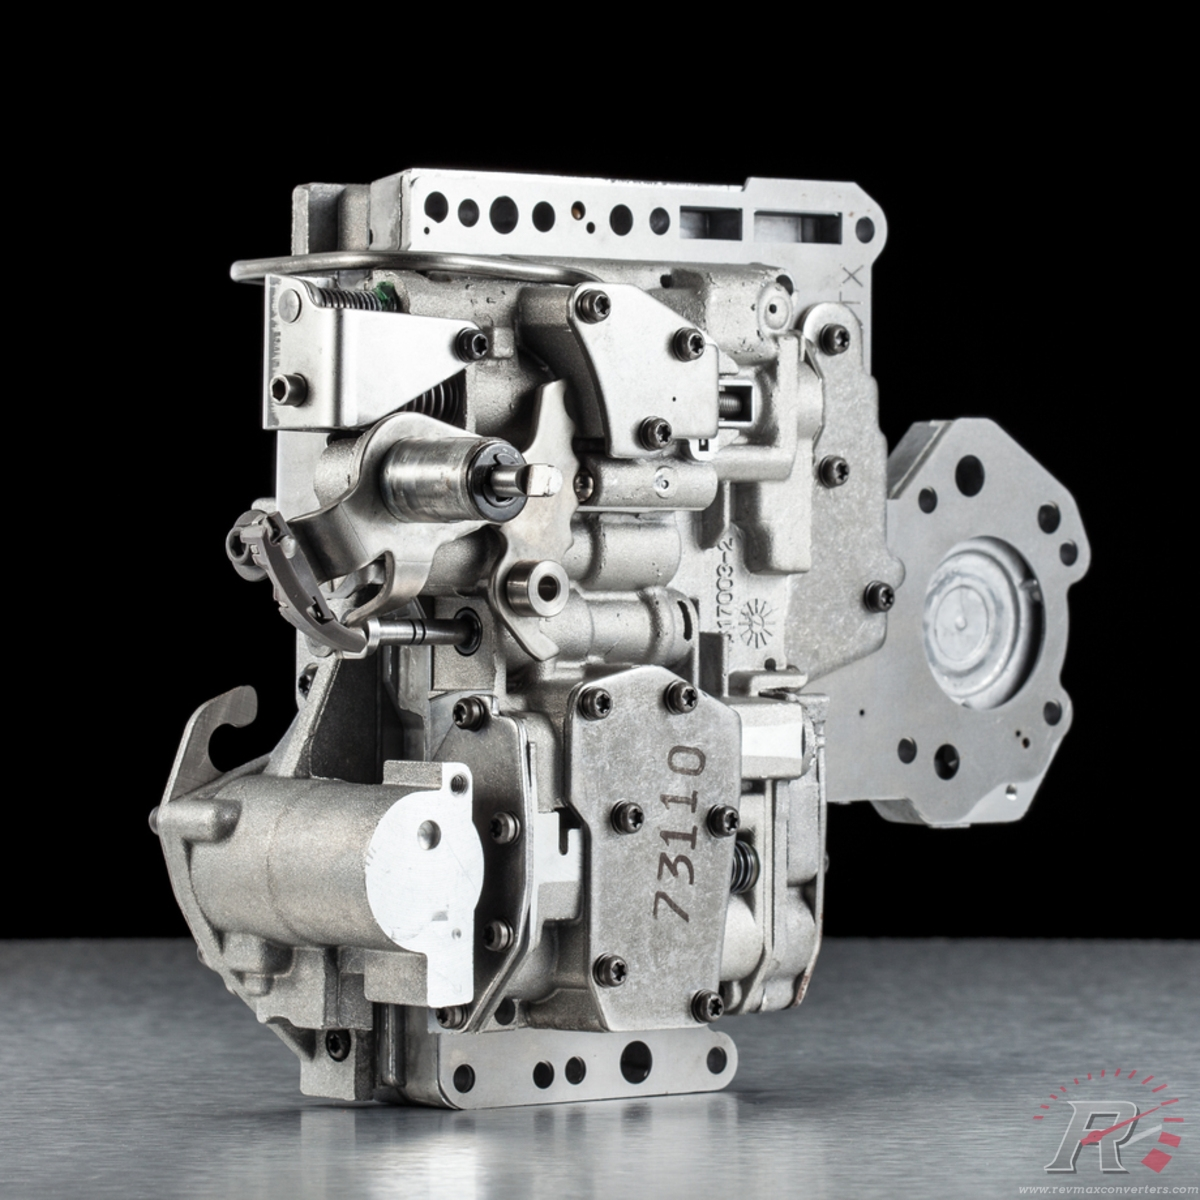 hight resolution of 47re valve body 47rh sled pull valve body full manual valve body